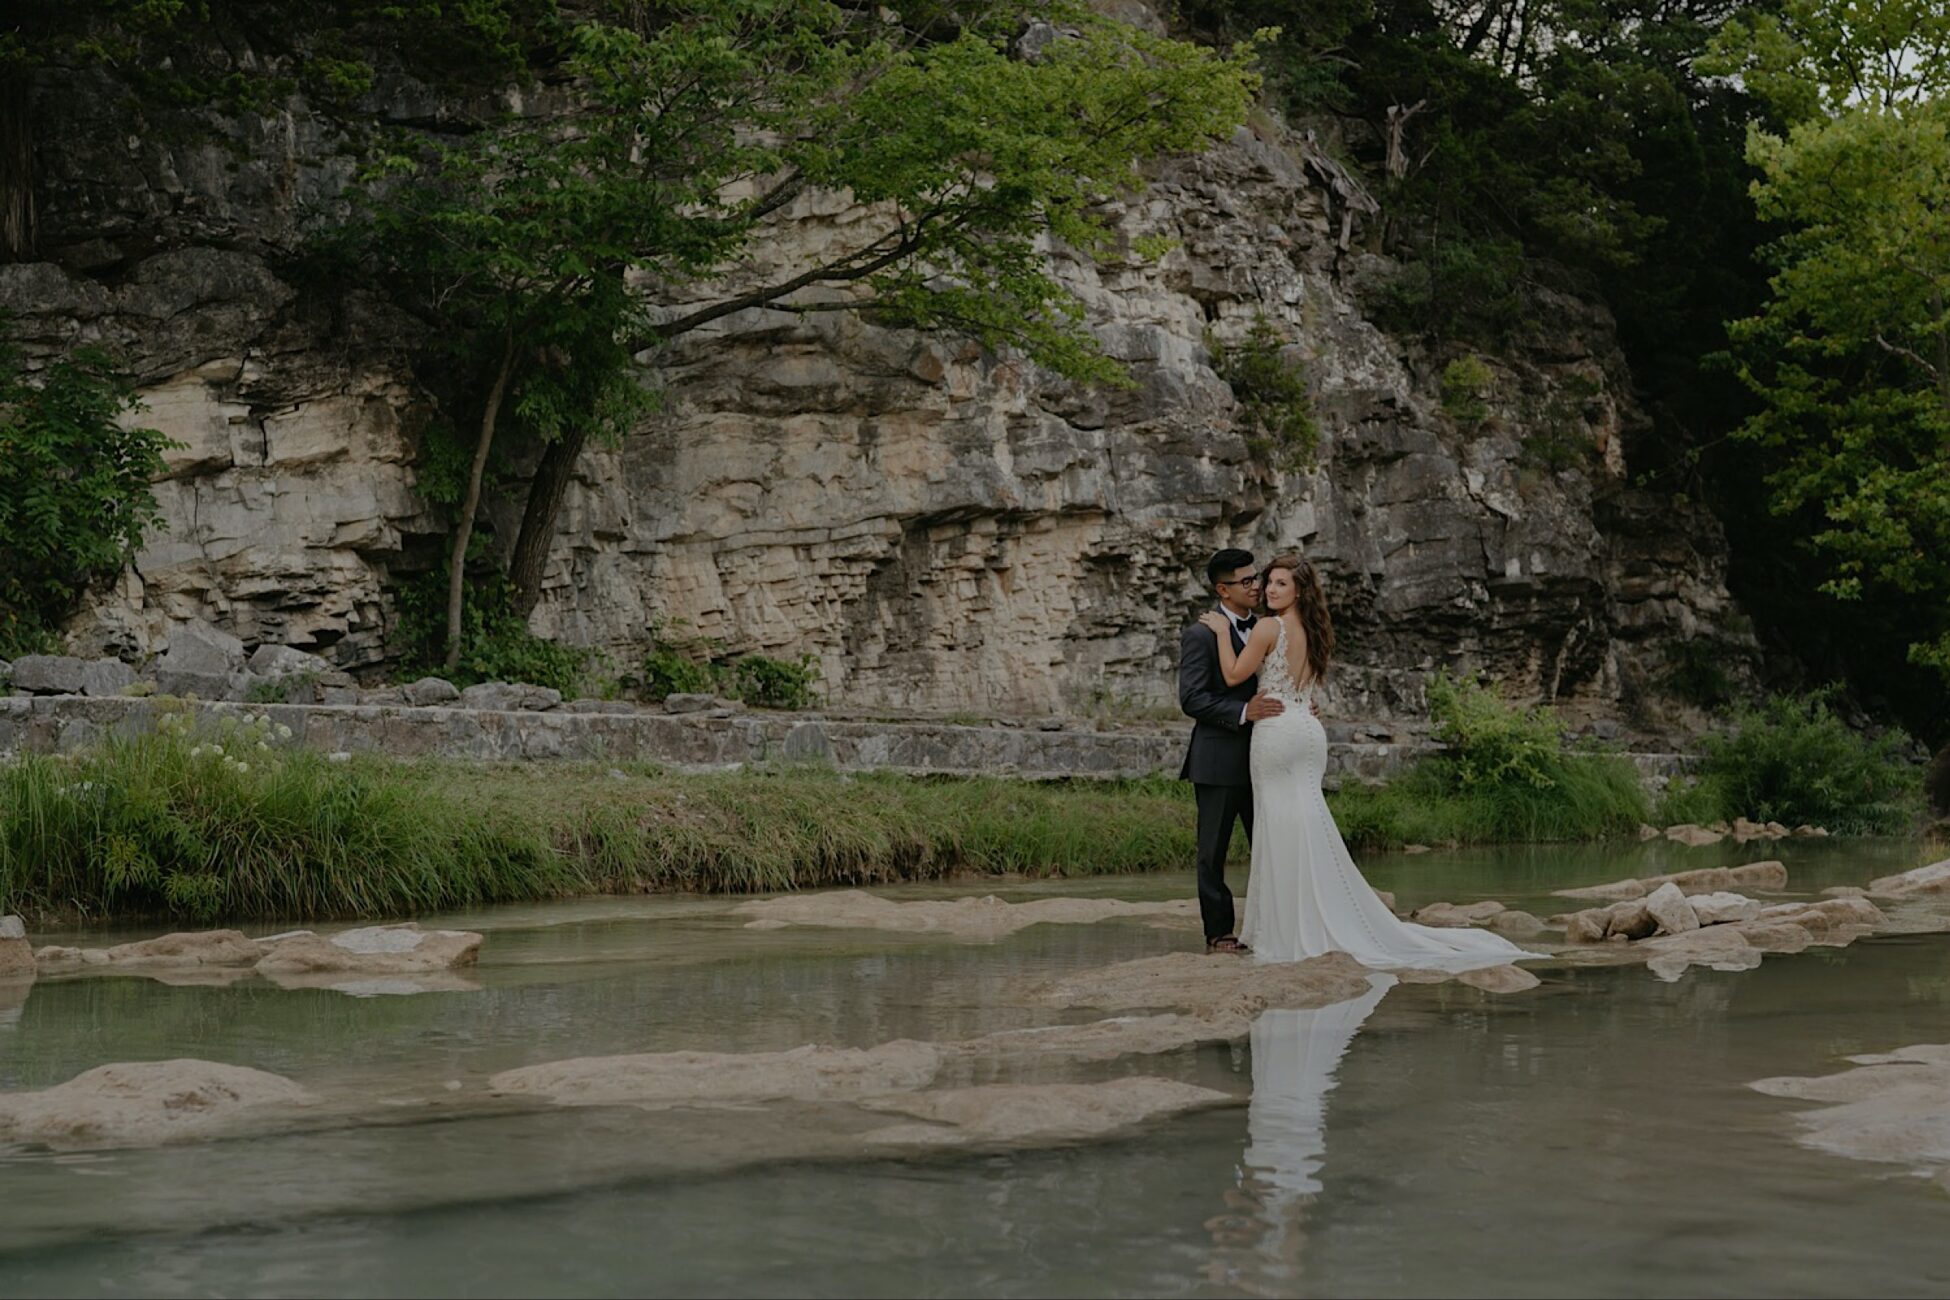 location-list-of-where-to-elope-in-oklahoma